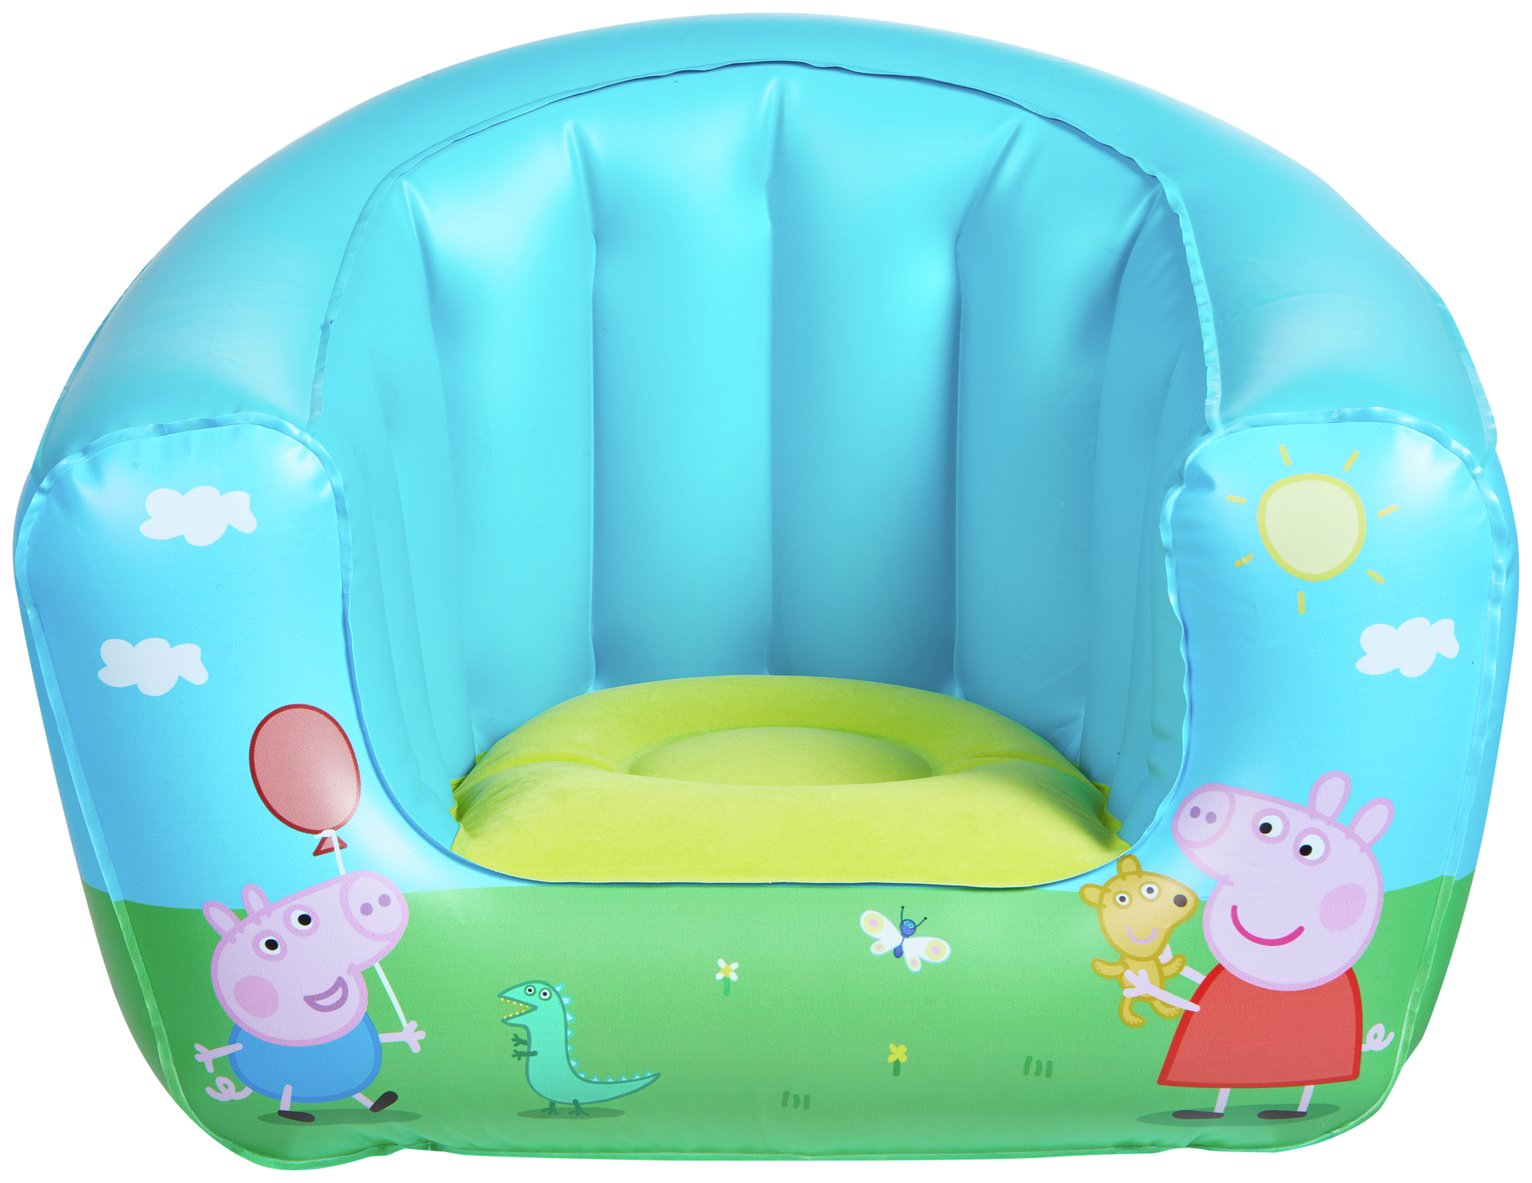 Peppa Pig Find offers online and pare prices at Wunderstore